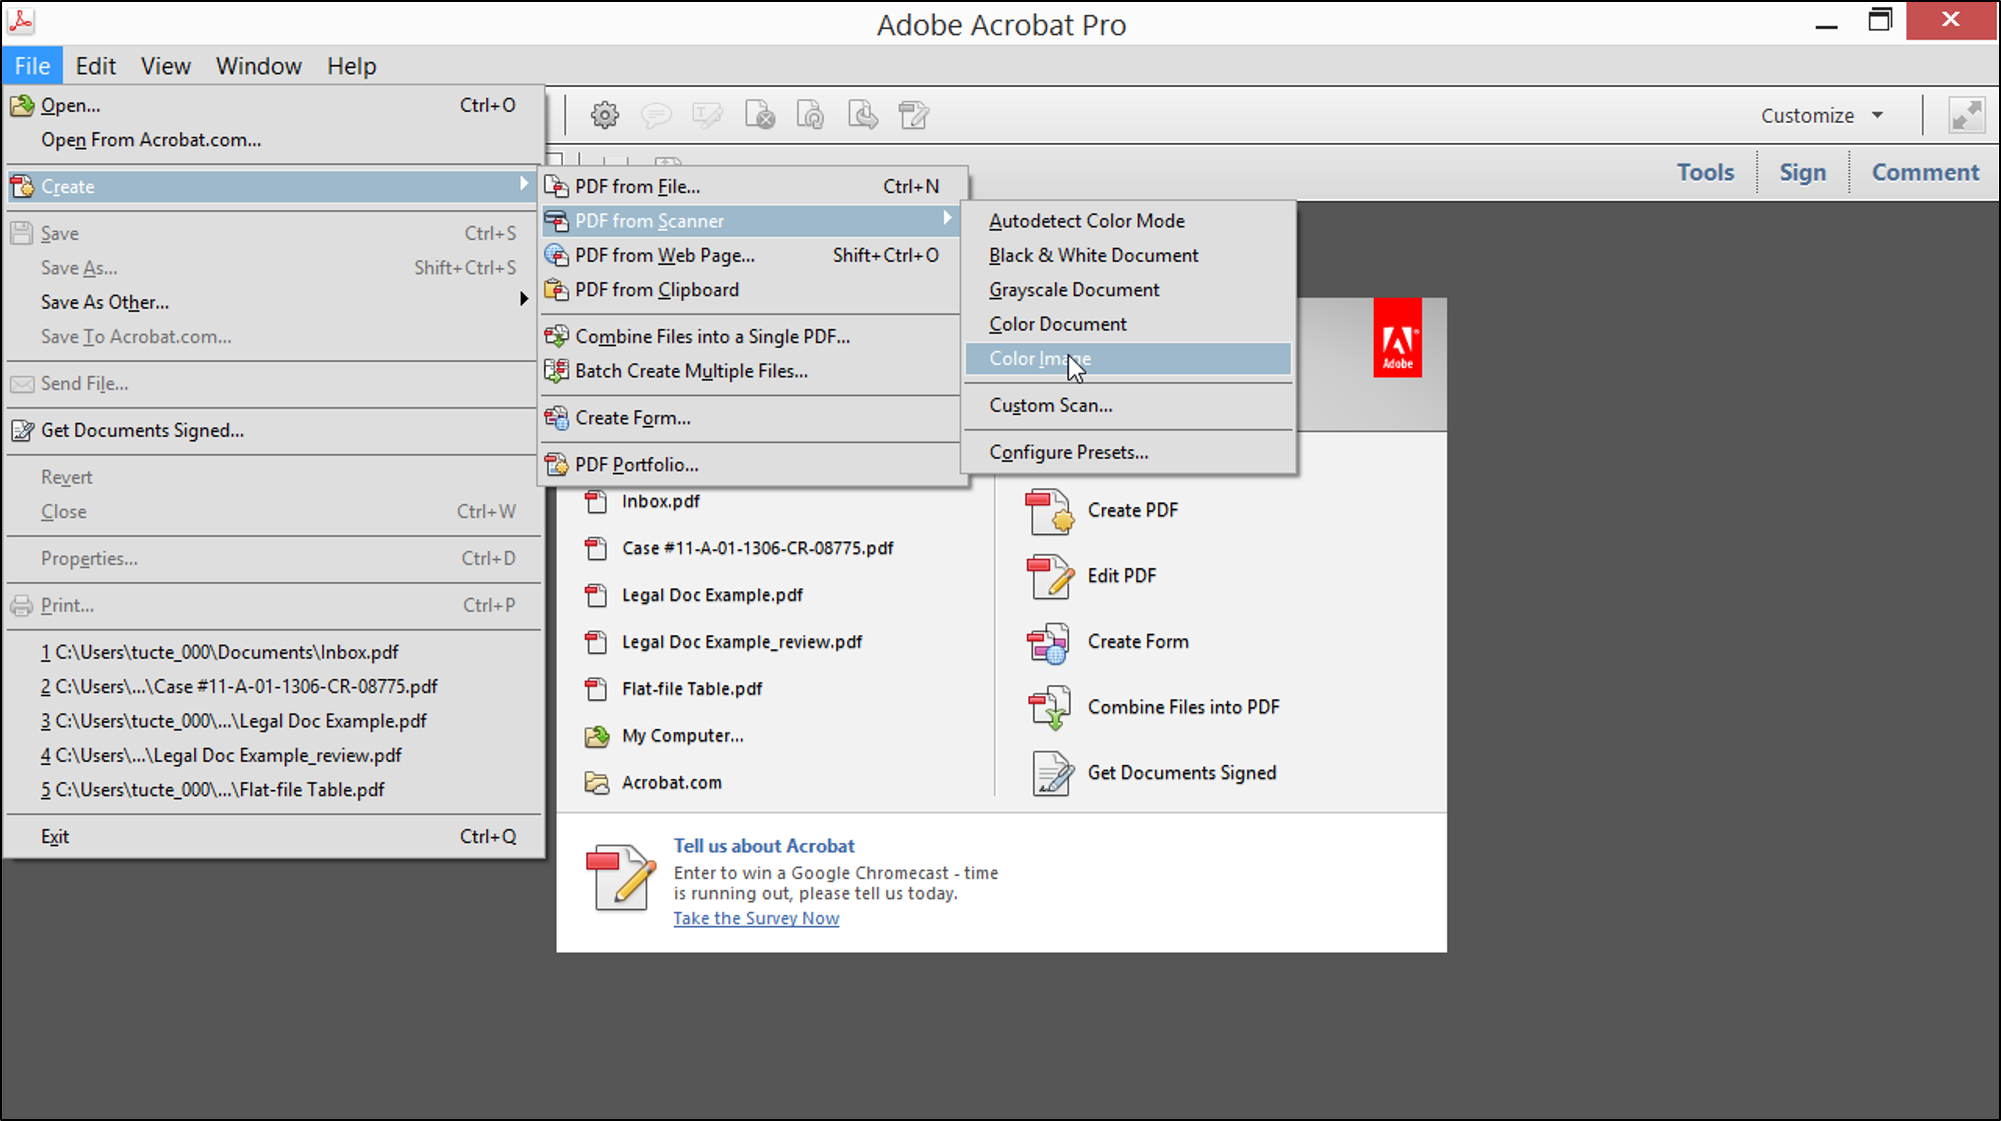 Create a PDF from a Scanner.